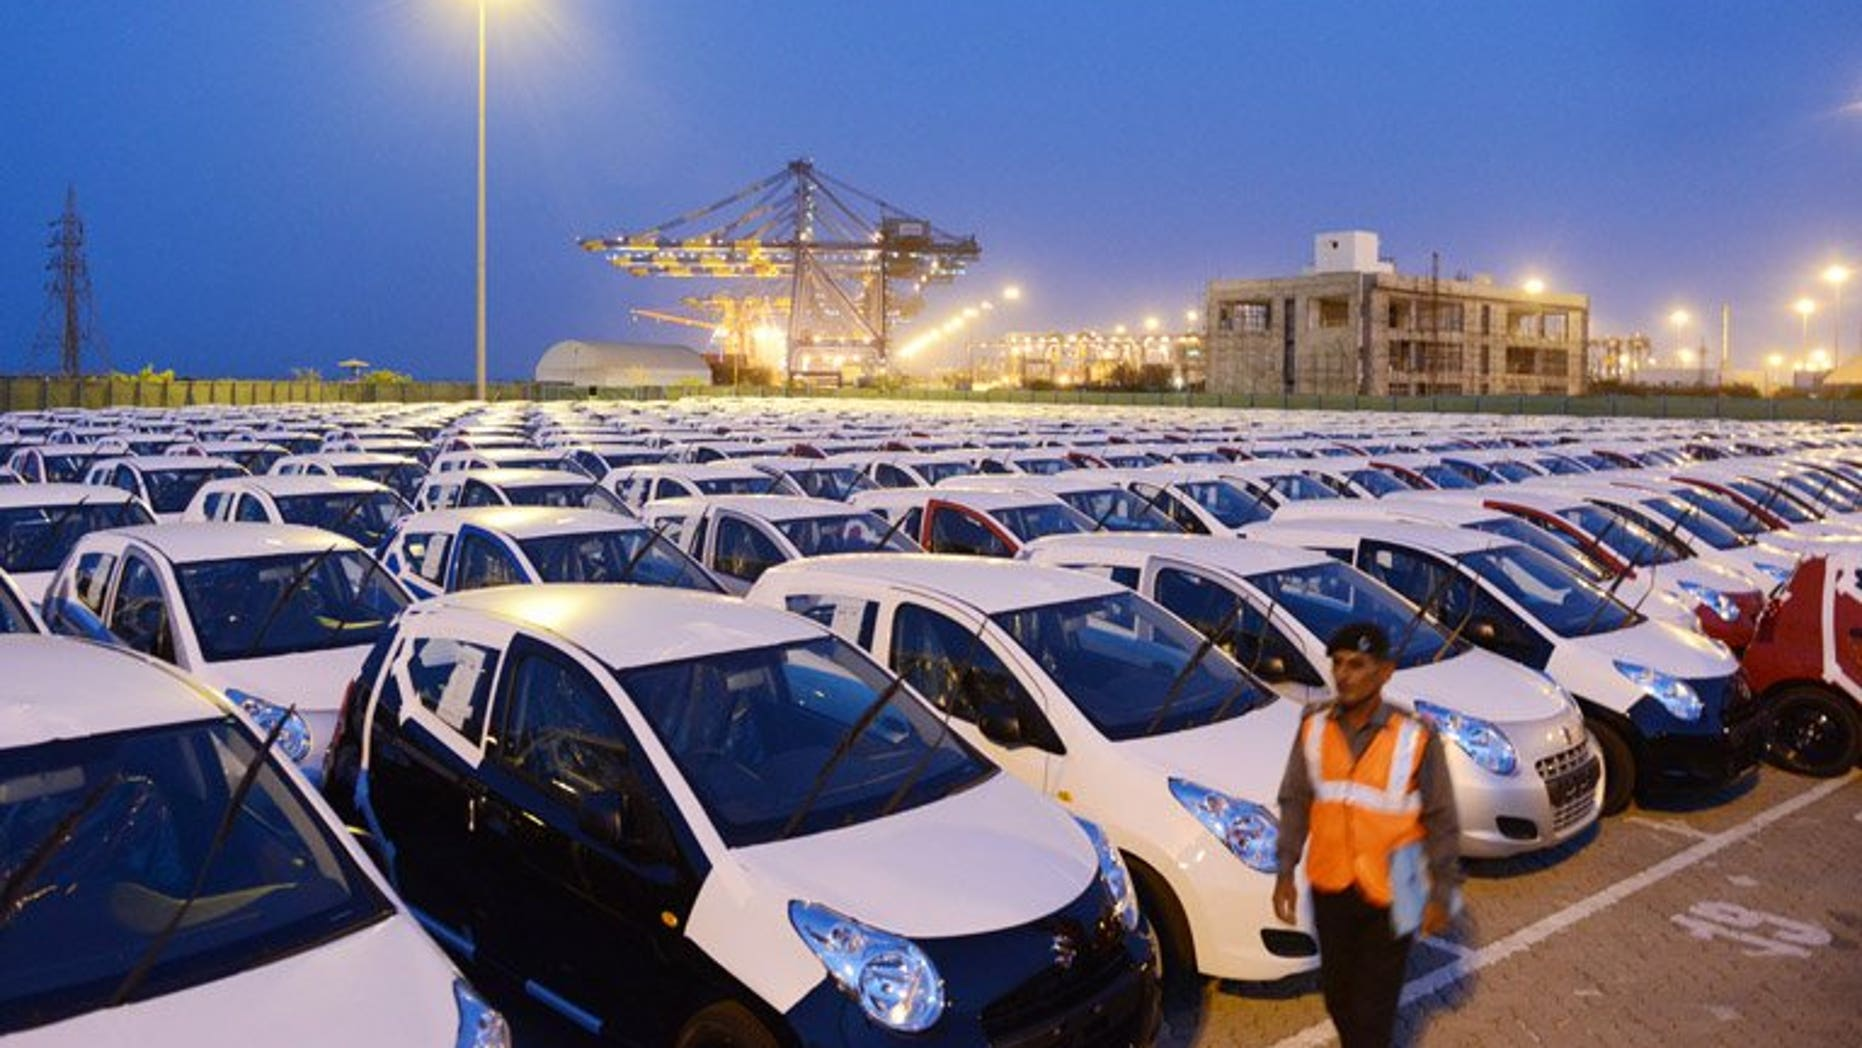 Maruti Suzuki Alto for export are parked in a holding area in Mundra last month. India's car sales slid nine percent in June, marking a record eighth straight month of decline, data showed Friday, as the industry demanded a government package to revive the once booming sector.